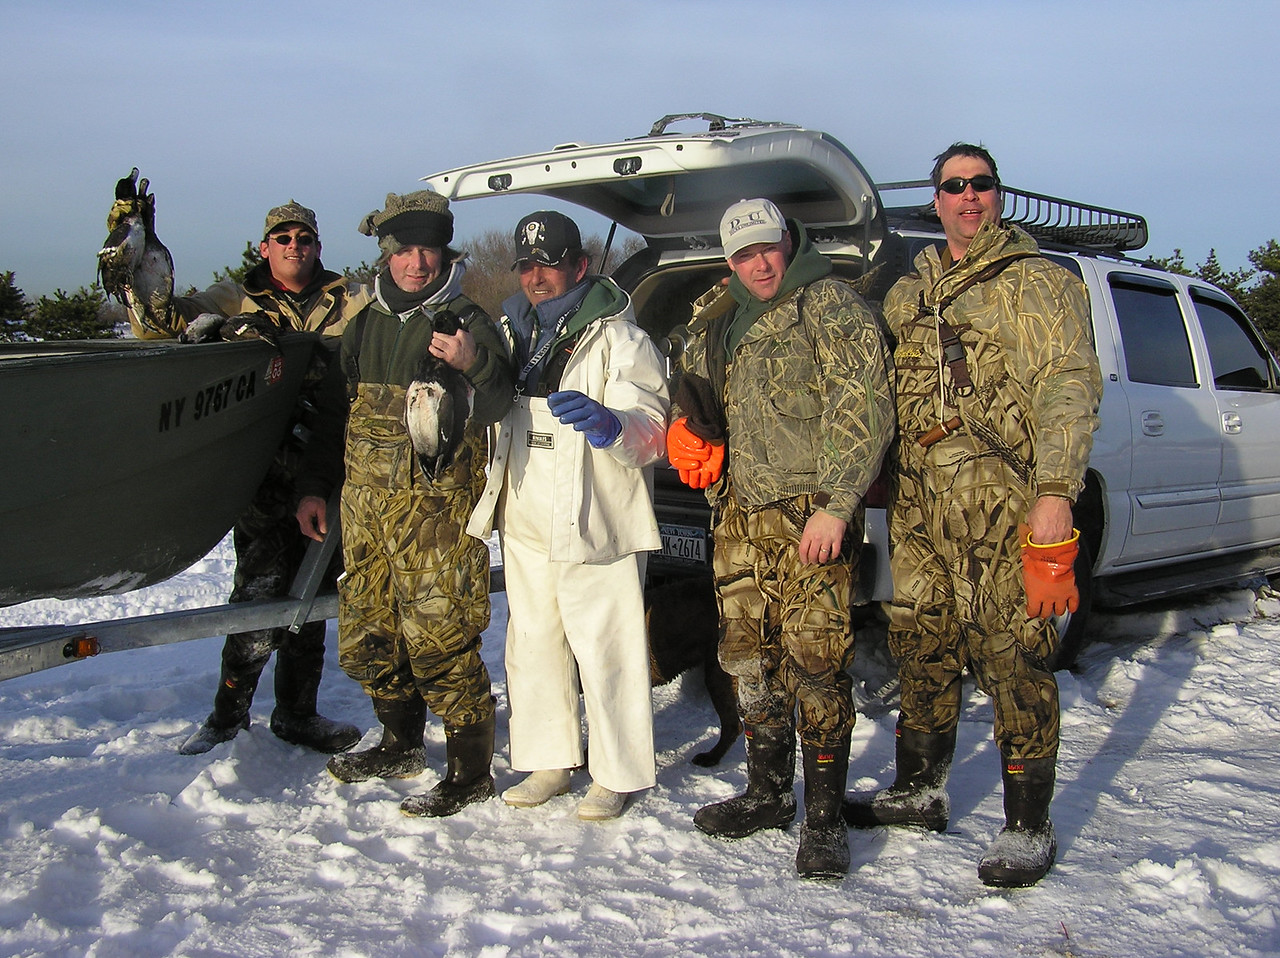 Here is part of the hunting group.  Dillon, Bill, John, Tony and Scott.